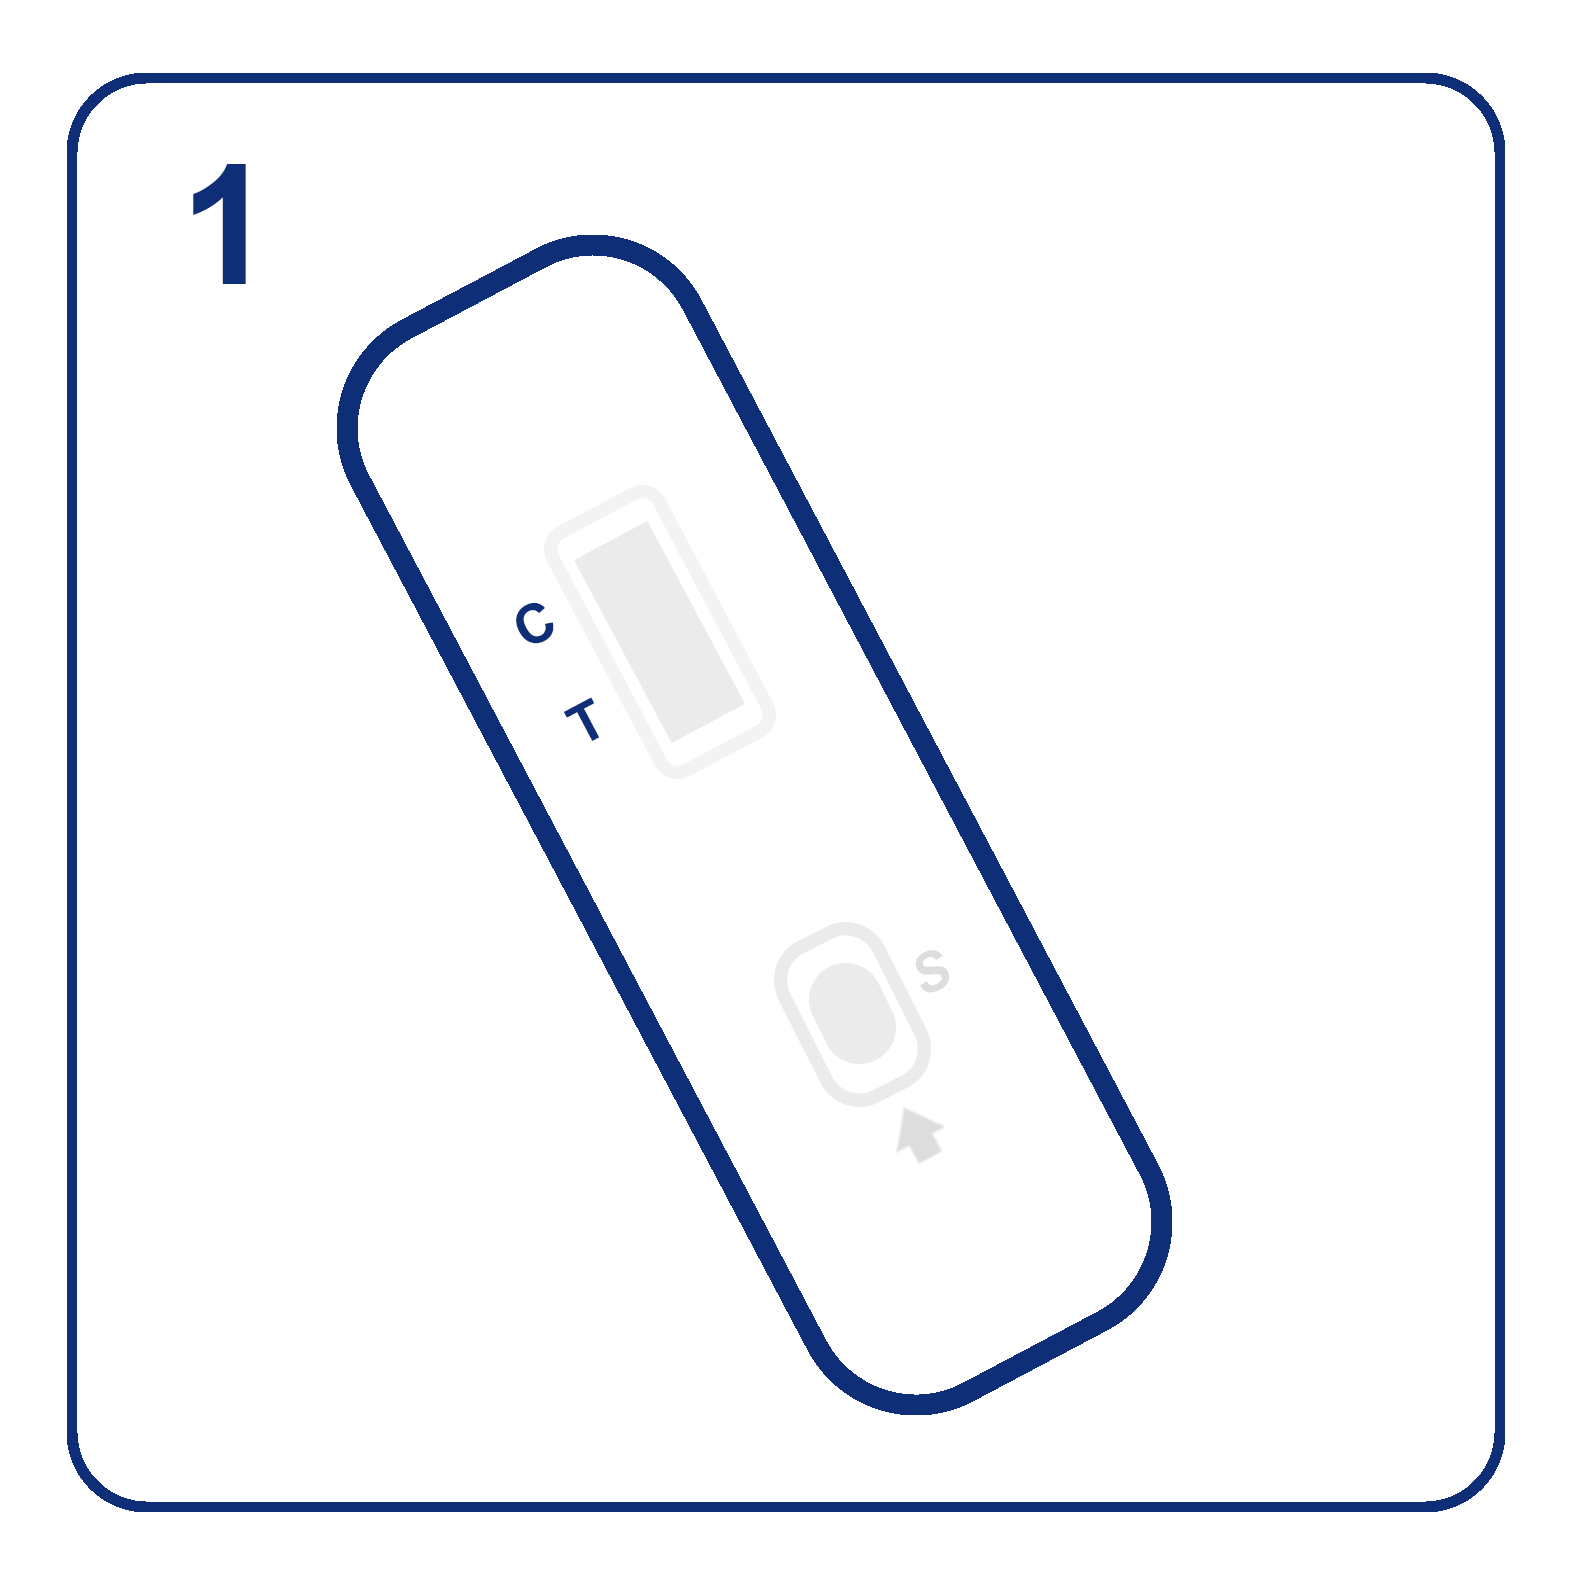 Place the cassette on a level surface at room temperature (15-25°C, 59-77°F).